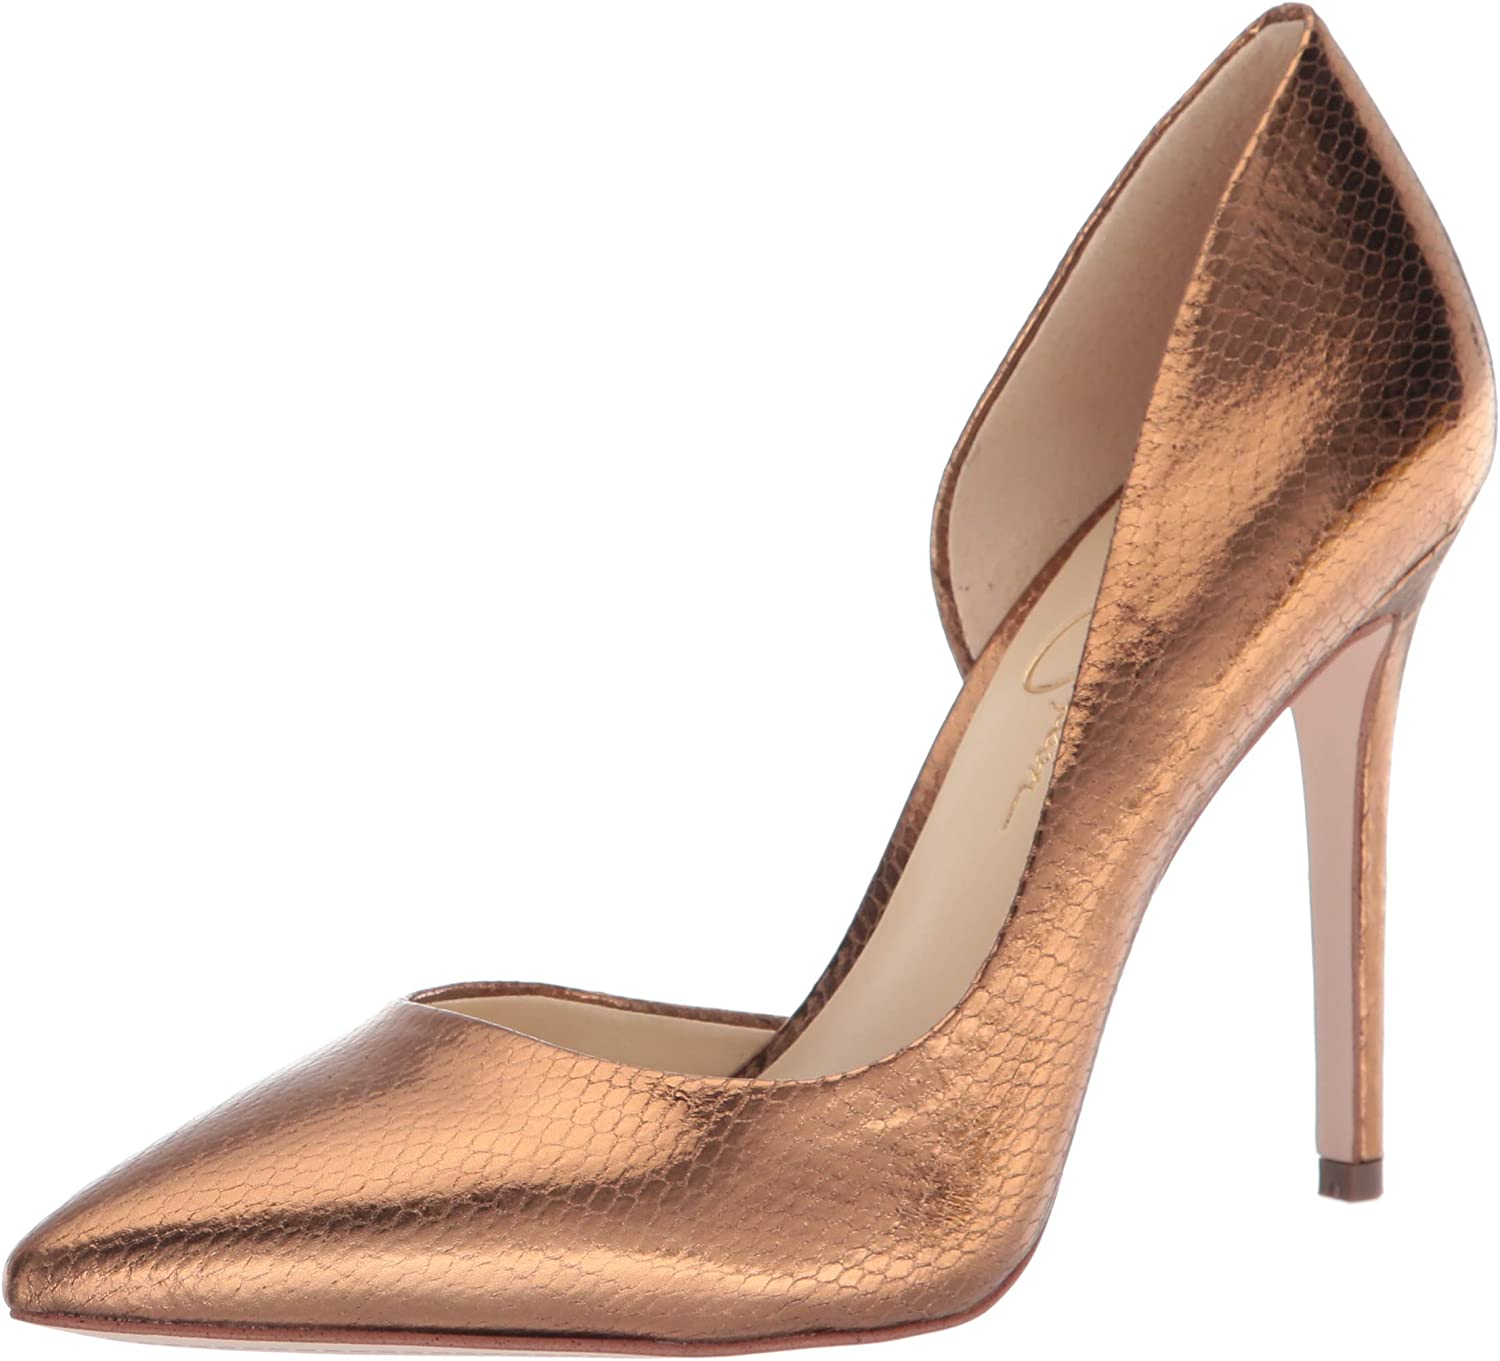 Jessica Simpson Women's Inventory cleanup selling sale Prizma quality assurance Pointed Pumps Toe D'Orsay Heels